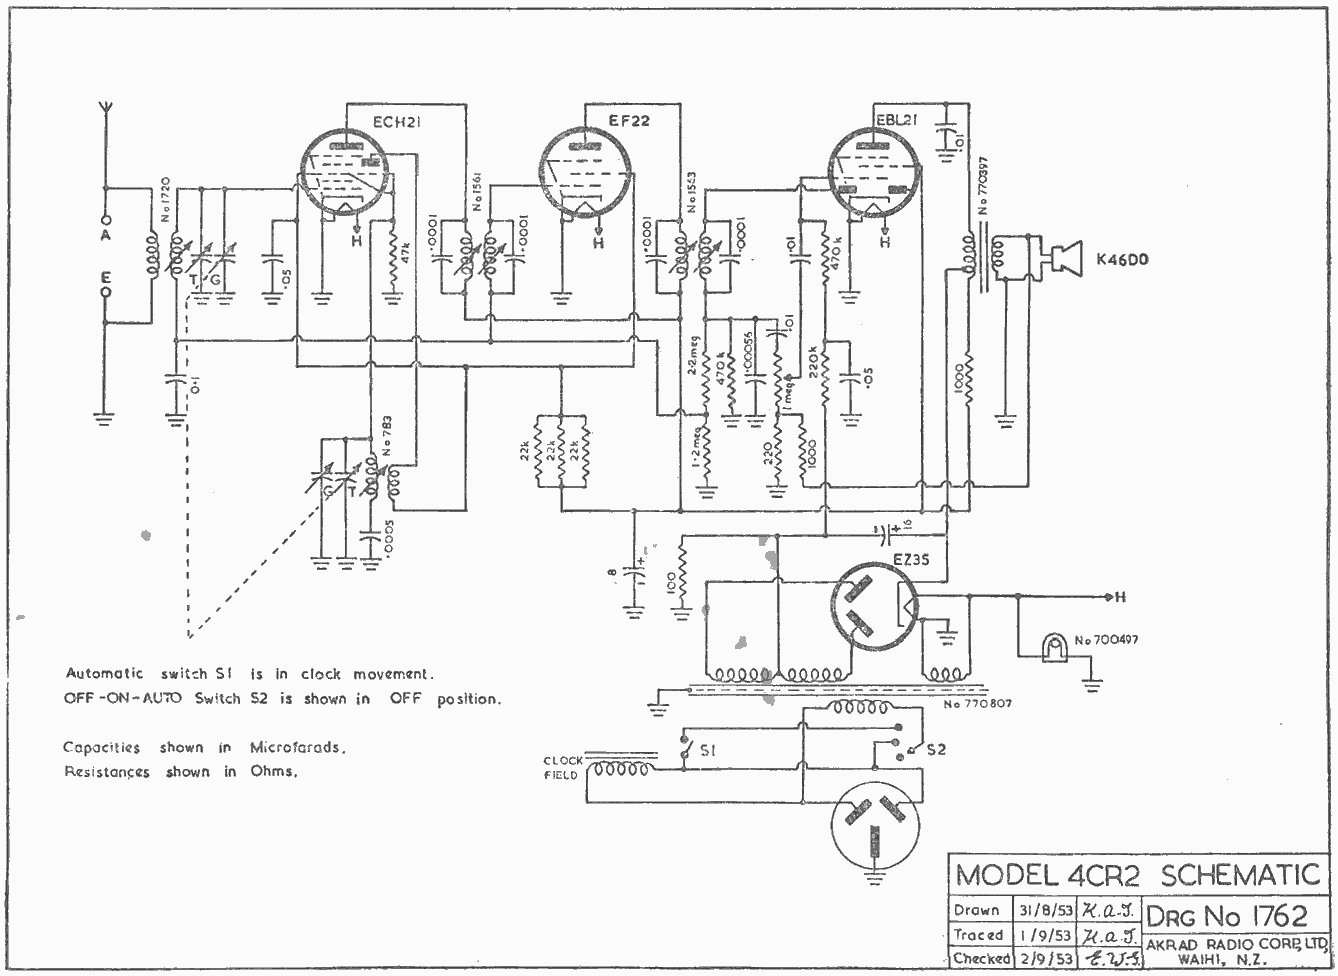 1953 Pacific (Post-WWII) 4CR Schematic